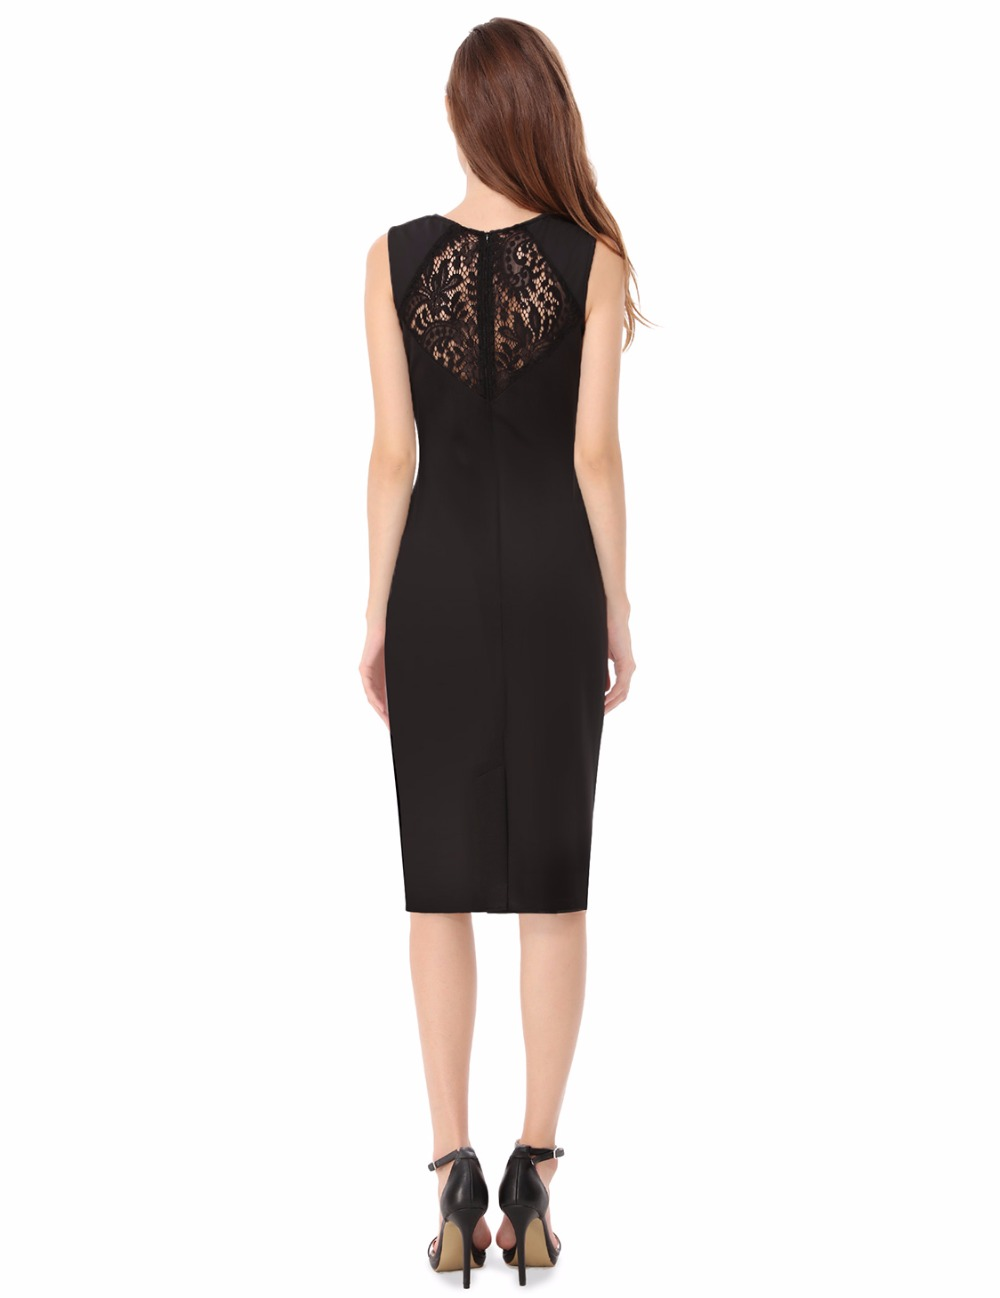 Clearance sale ever pretty women vintage cocktail dresses bodycon a clearance sale ever pretty women vintage cocktail dresses bodycon a line sexy lace sleeveless formal party cocktail dress in cocktail dresses from ombrellifo Gallery